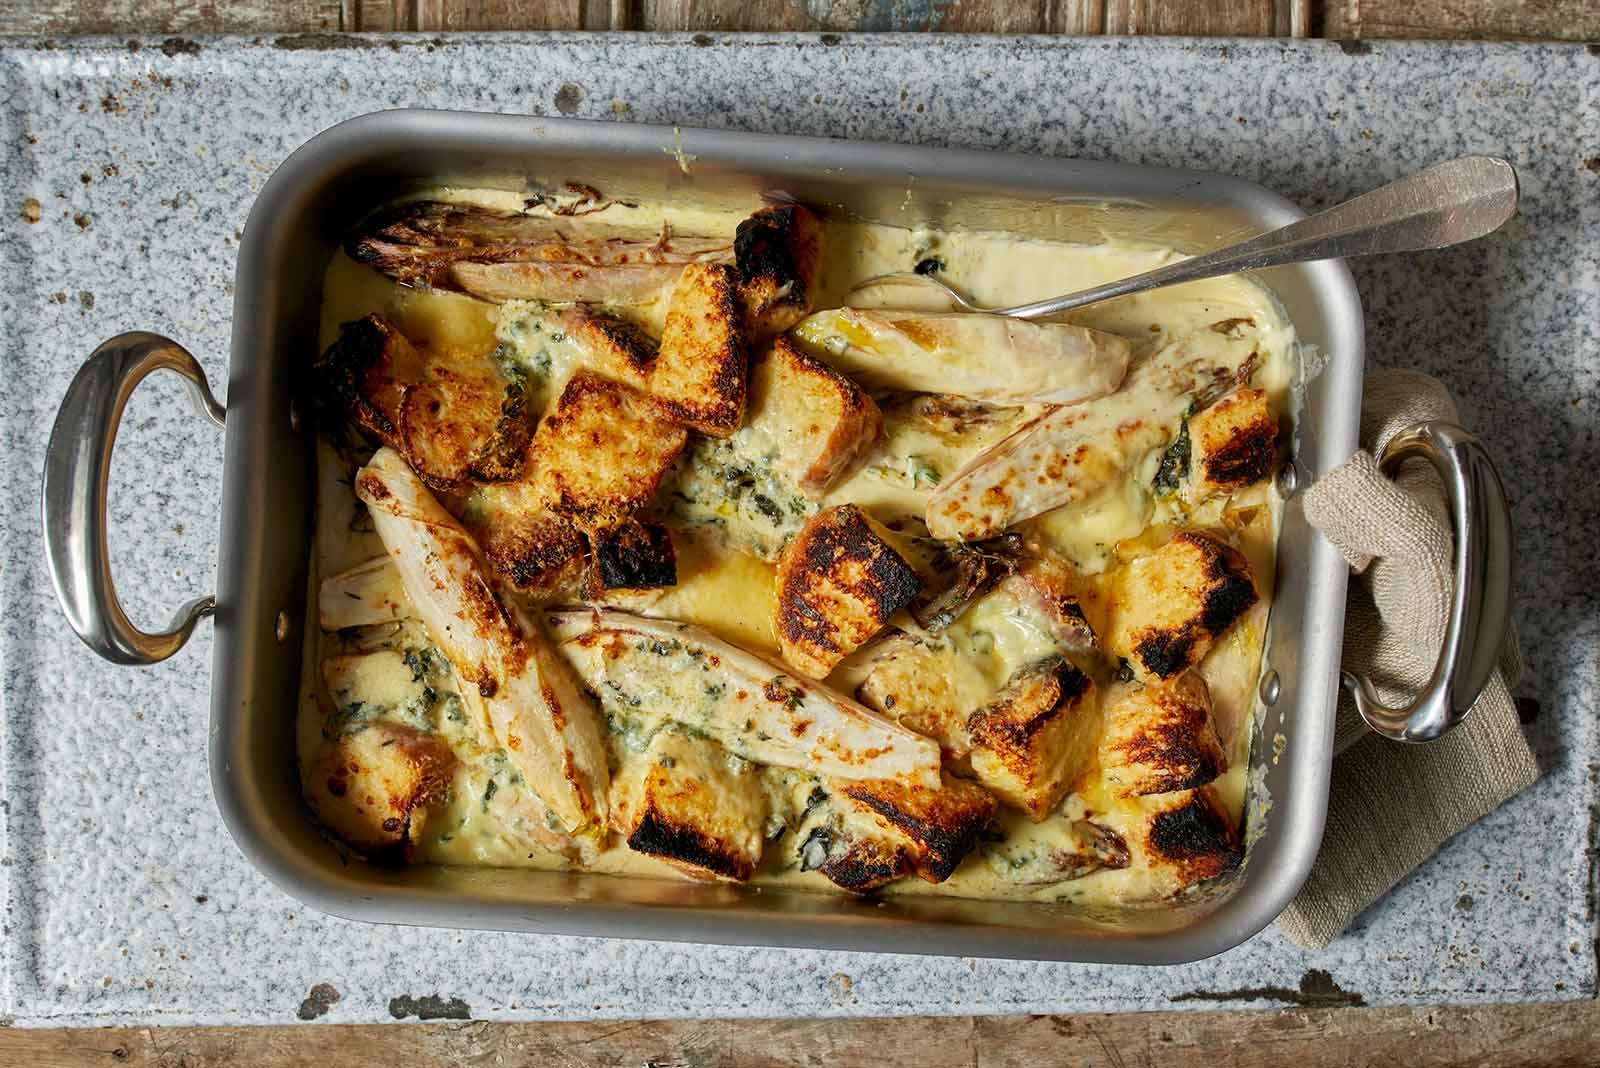 Comfort food archives james martin chef baked endive 2 forumfinder Gallery